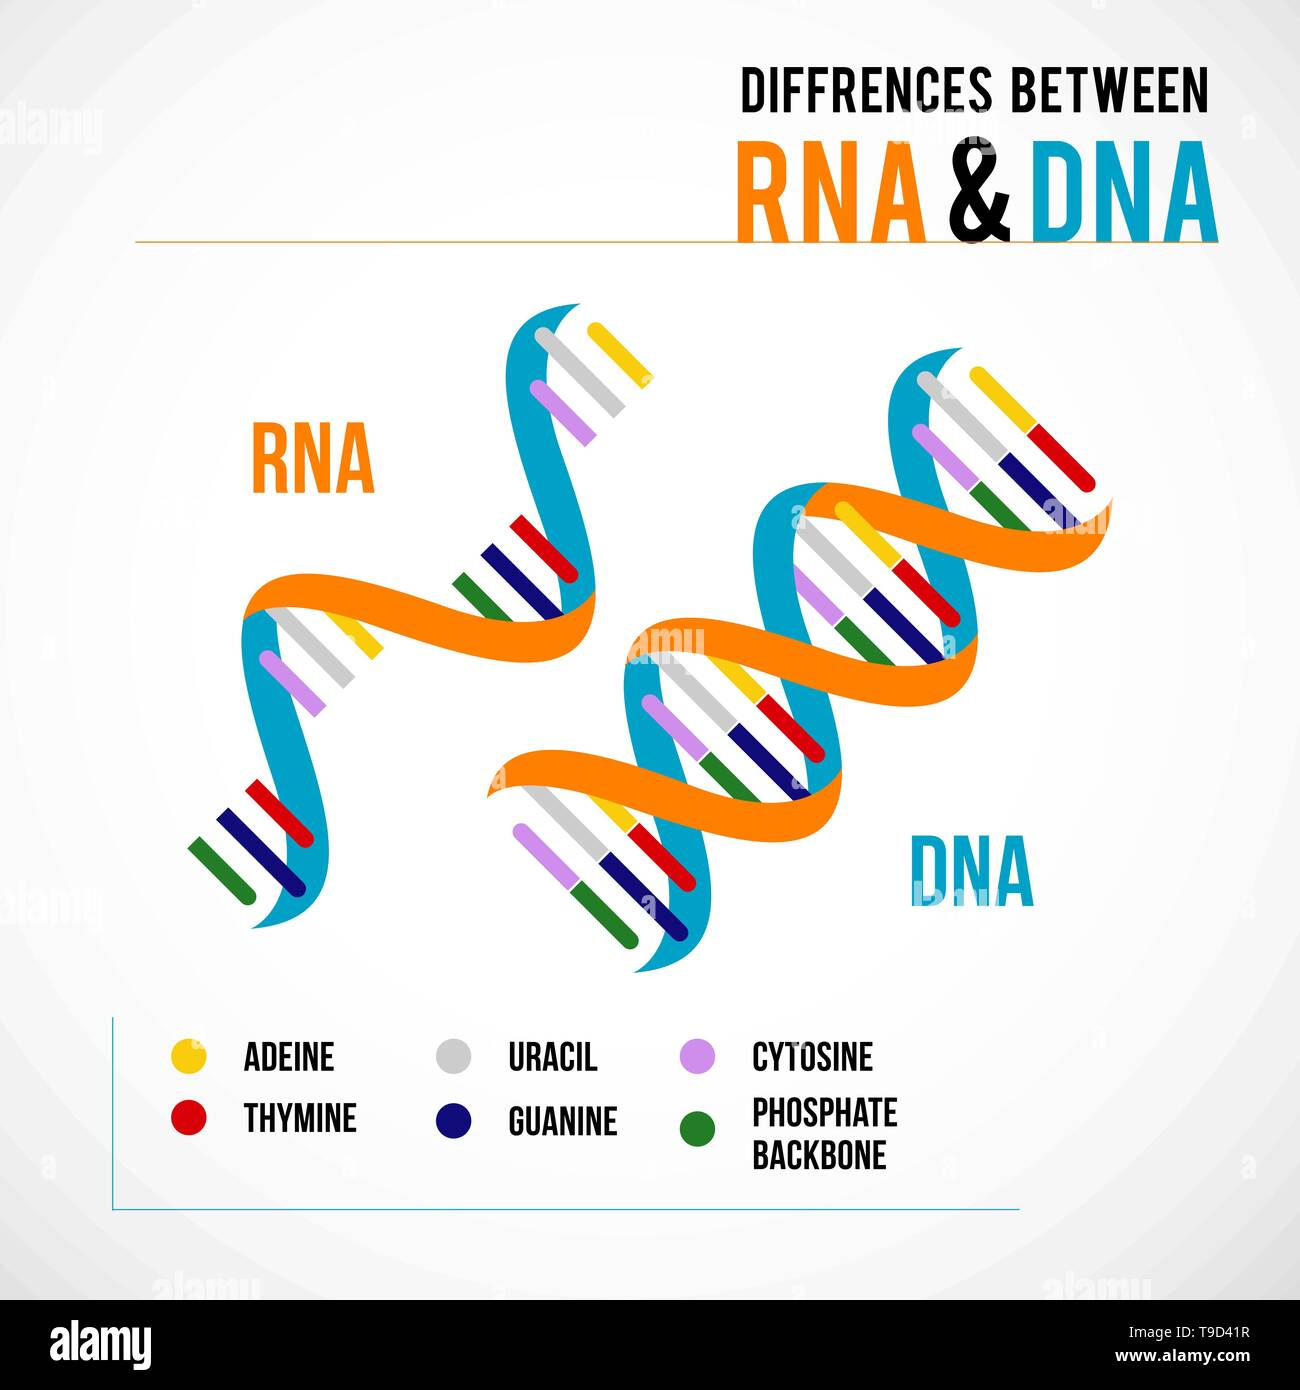 Differences between dna and rna. Vector scientific icon spiral of DNA and RNA.  An illustration of the differences in the structure of the DNA and RNA - Stock Image